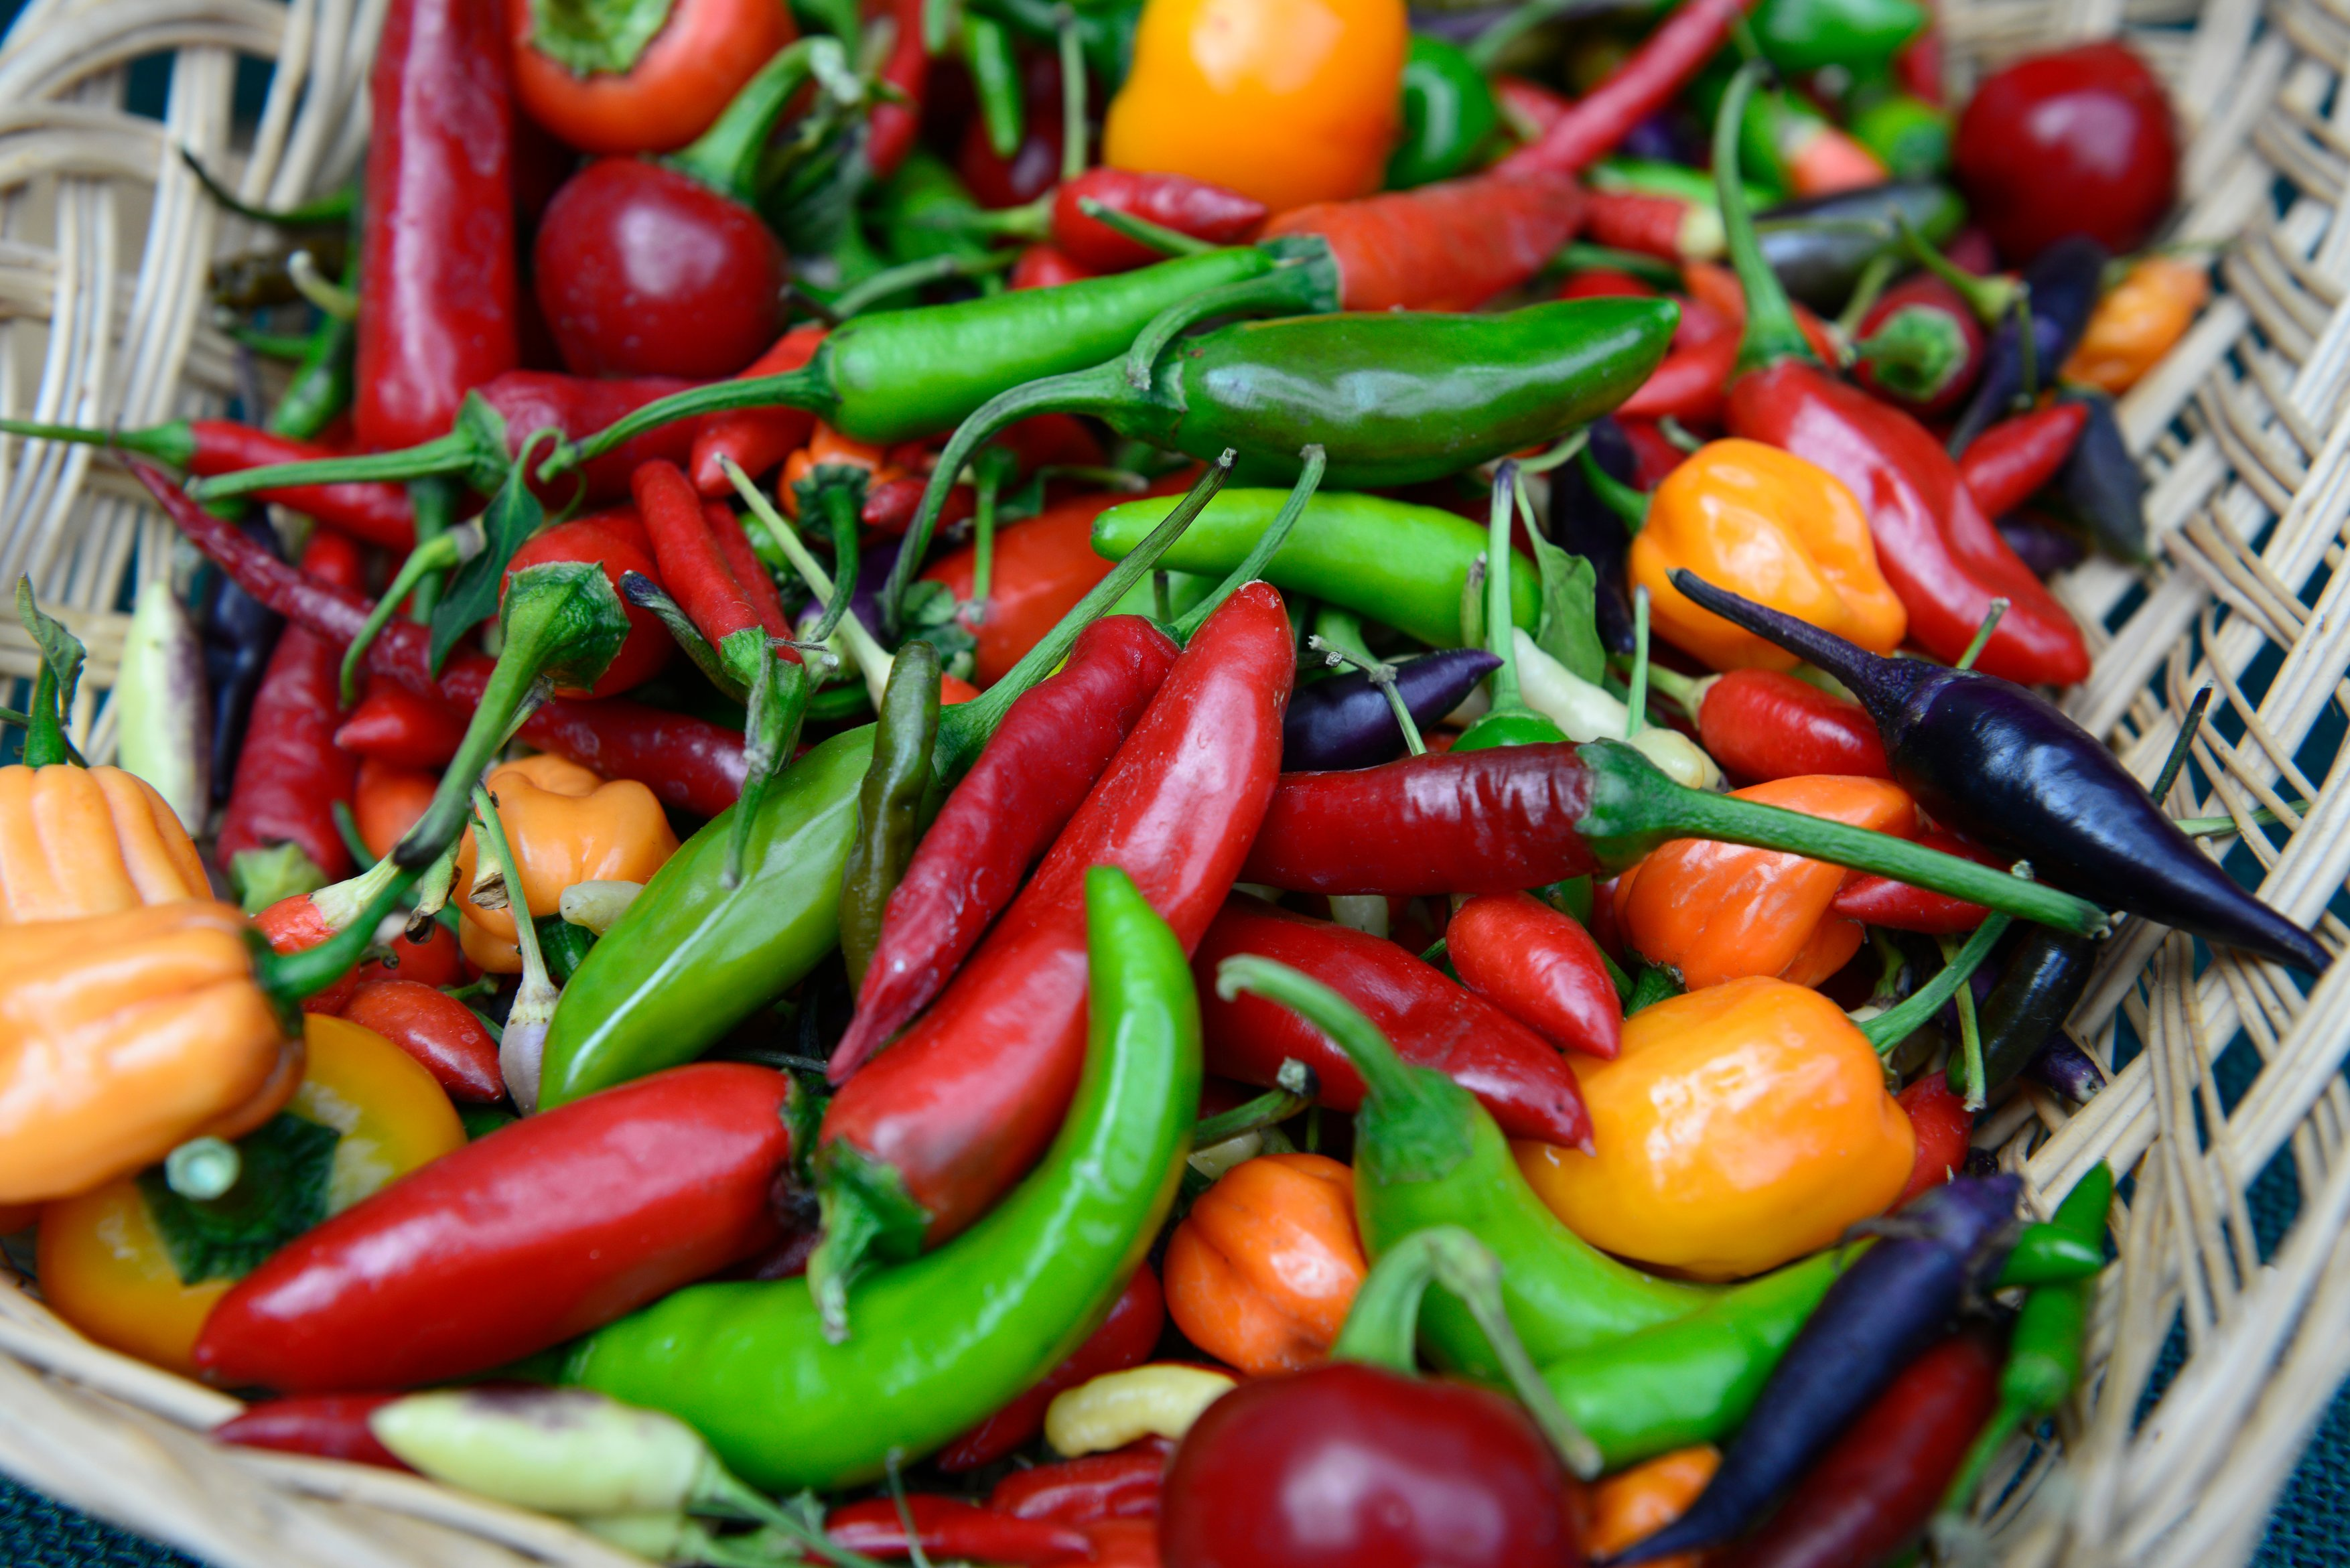 Grow your own is set to increase, with chillies a firm favourite (RHS/Bethany Clarke/PA)